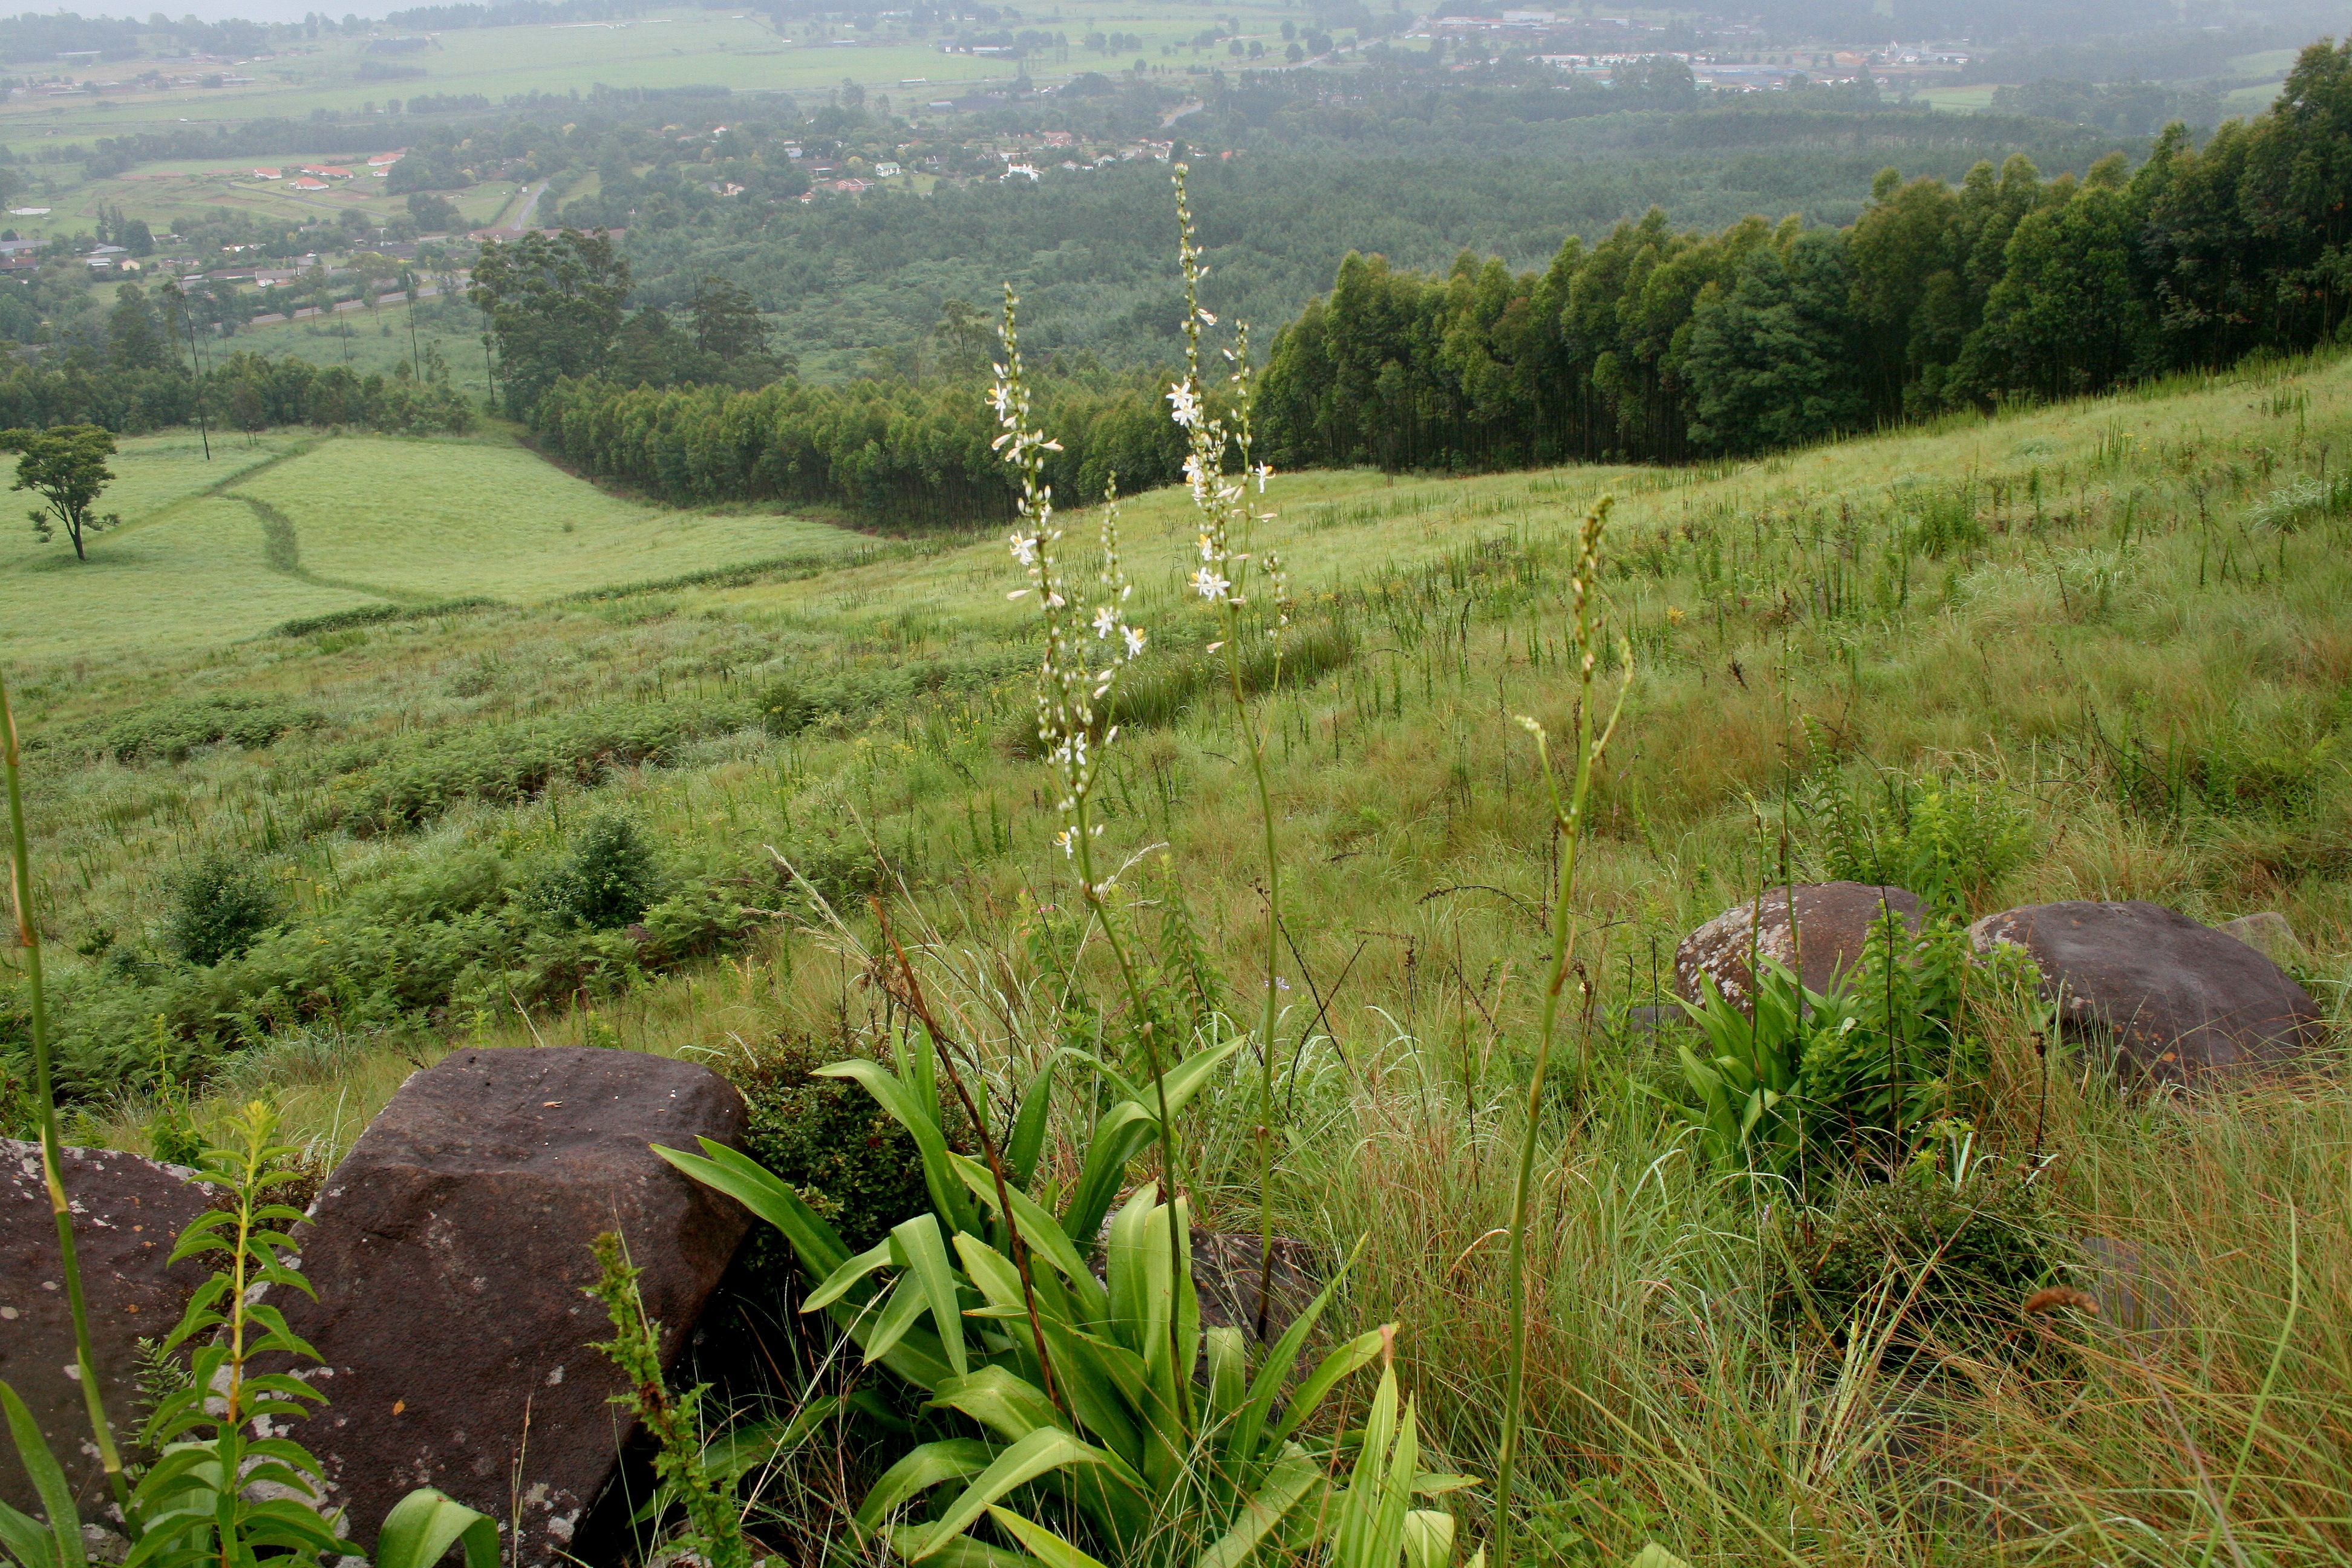 grassland ecosystems Freshwater ecosystems have rare species there are many species that do not live in salt water freshwater ecosystems are wherever there is fresh water frogs, fish.